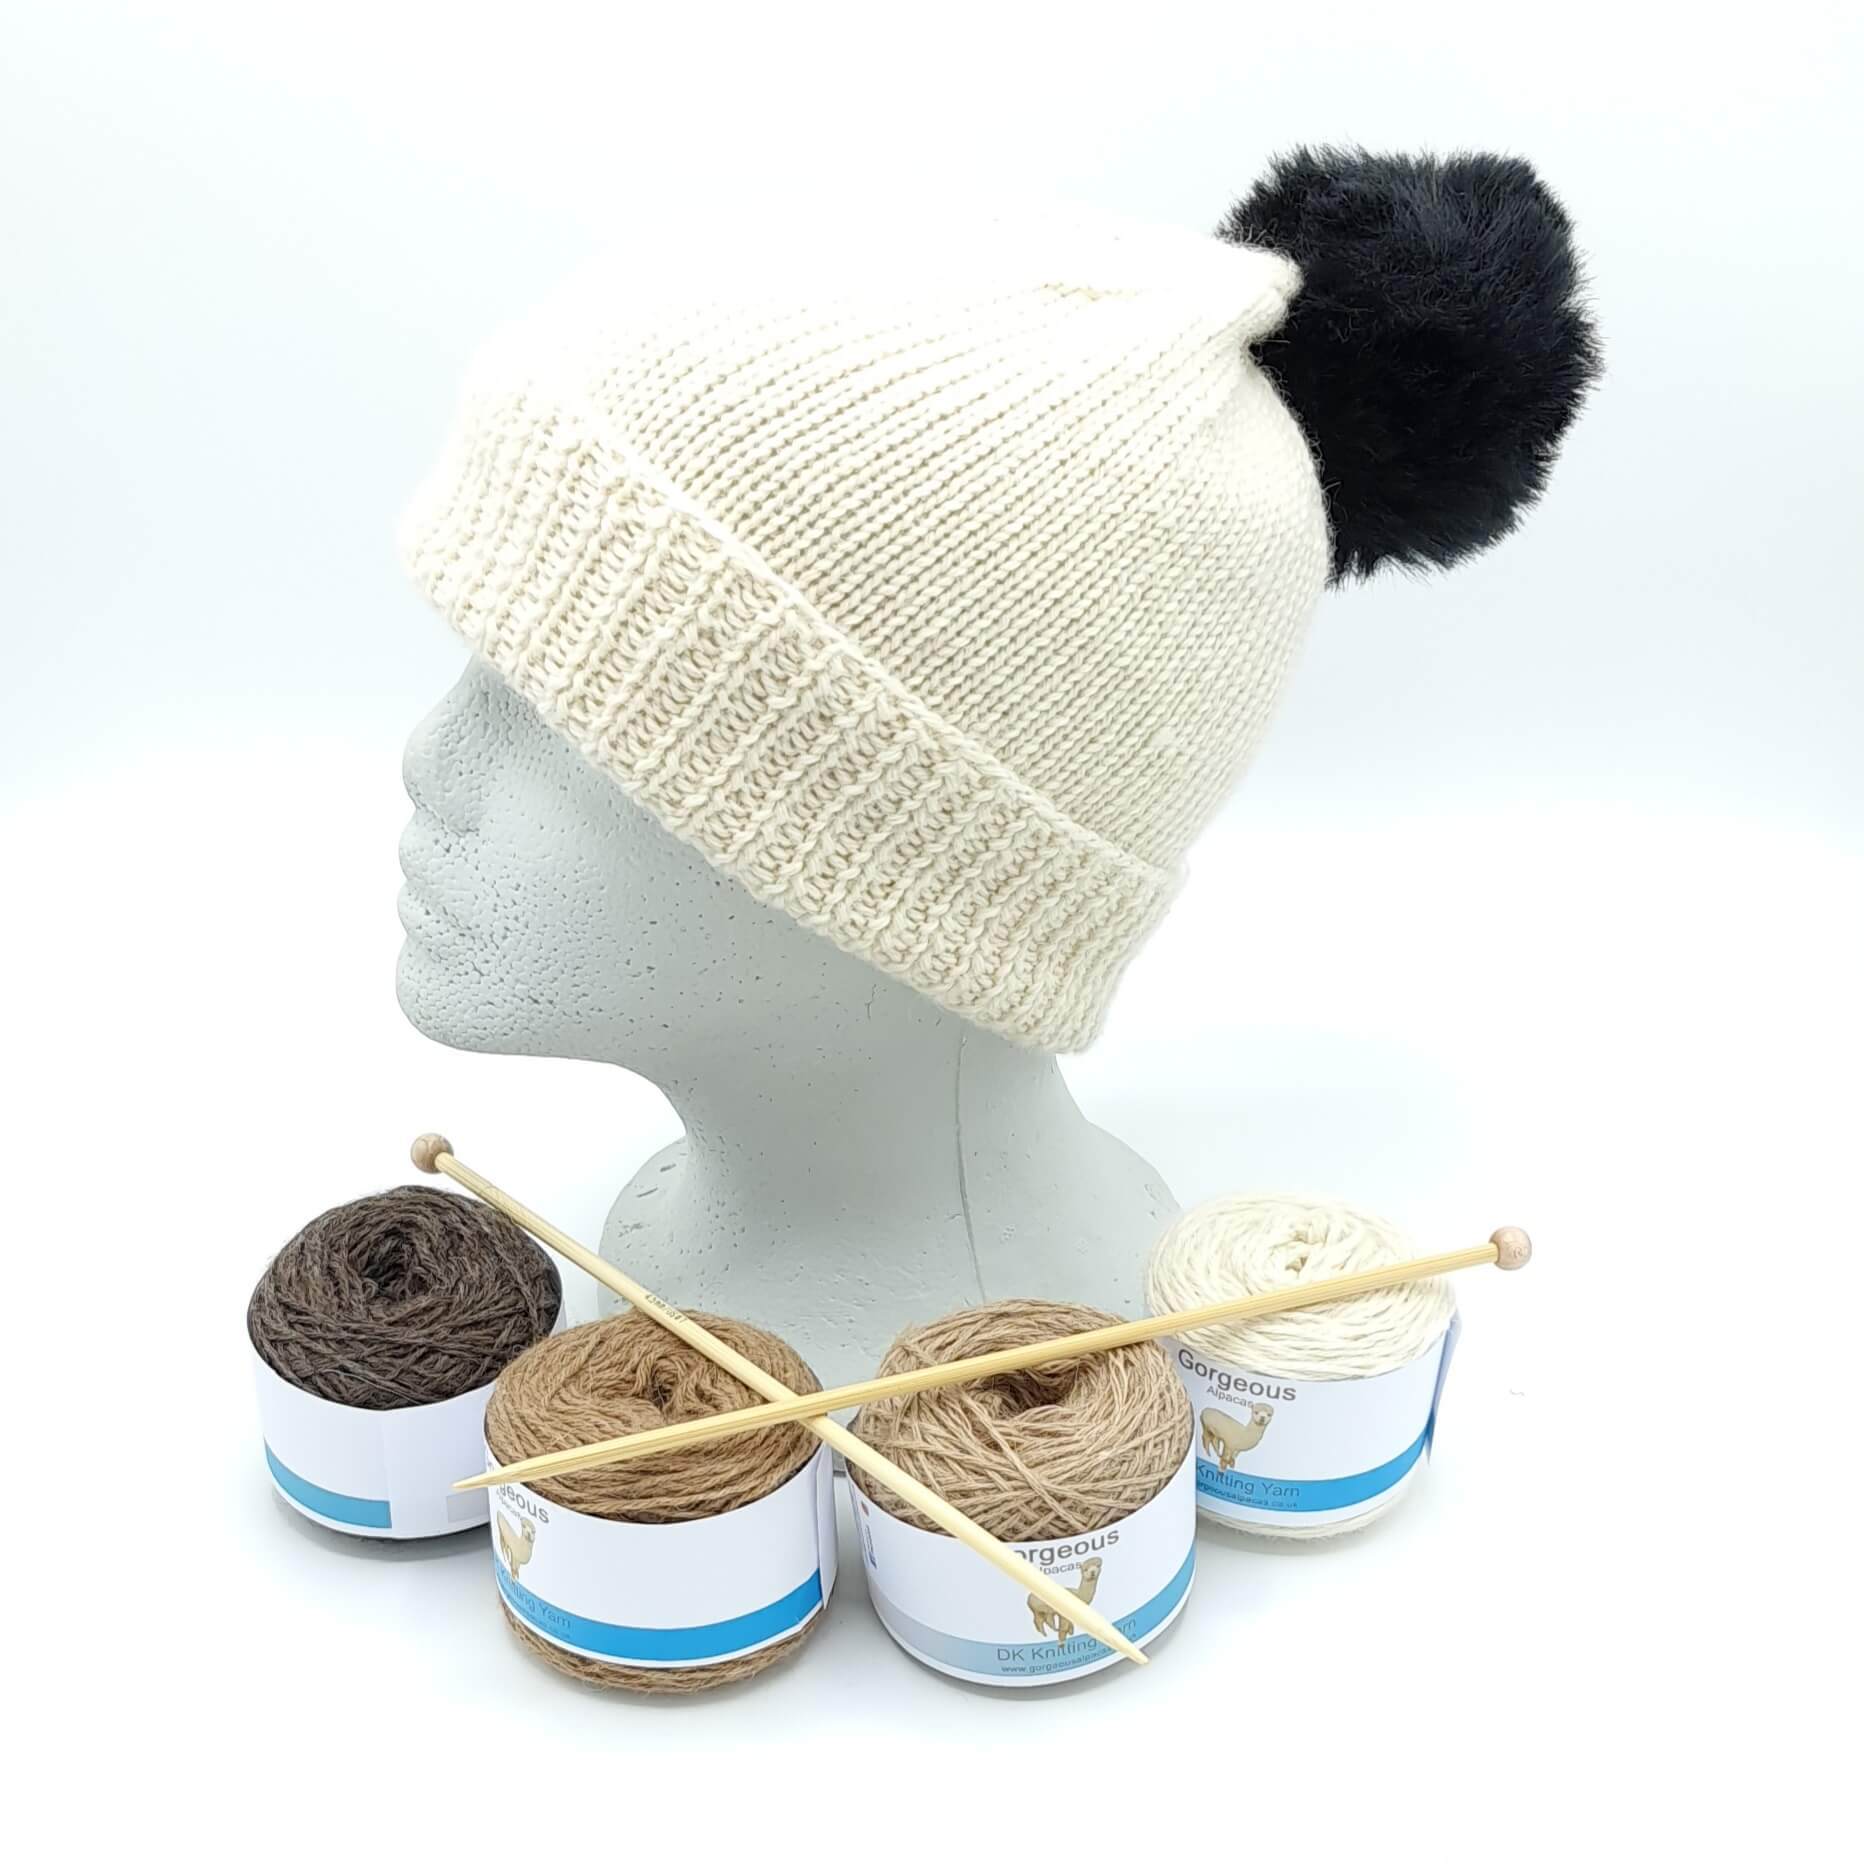 Knit Kit - Classic Beanie + - Gorgeous Alpacas